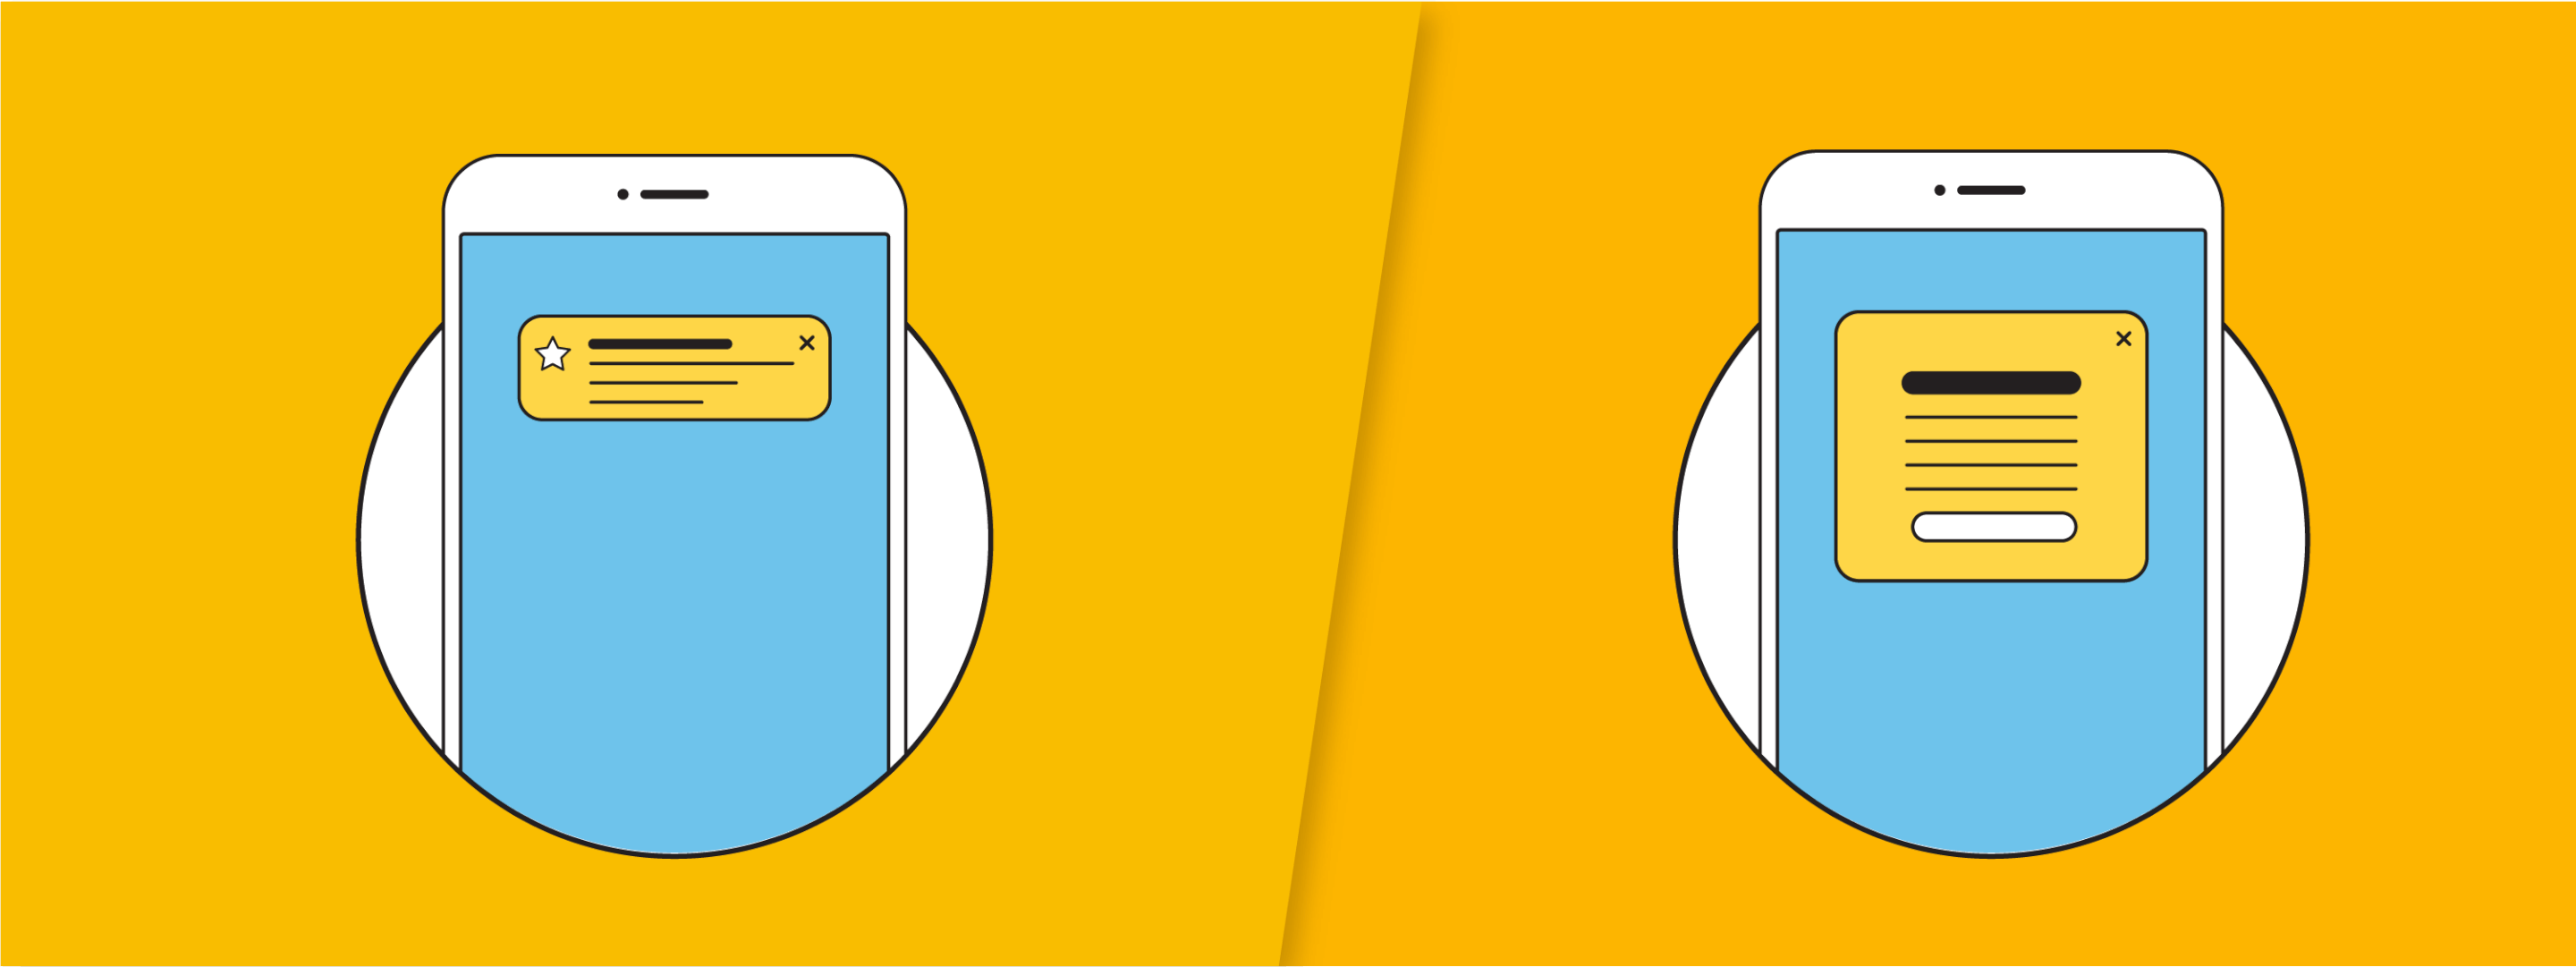 In-App Notification vs. Push Notification: What's Best for Customer Engagement